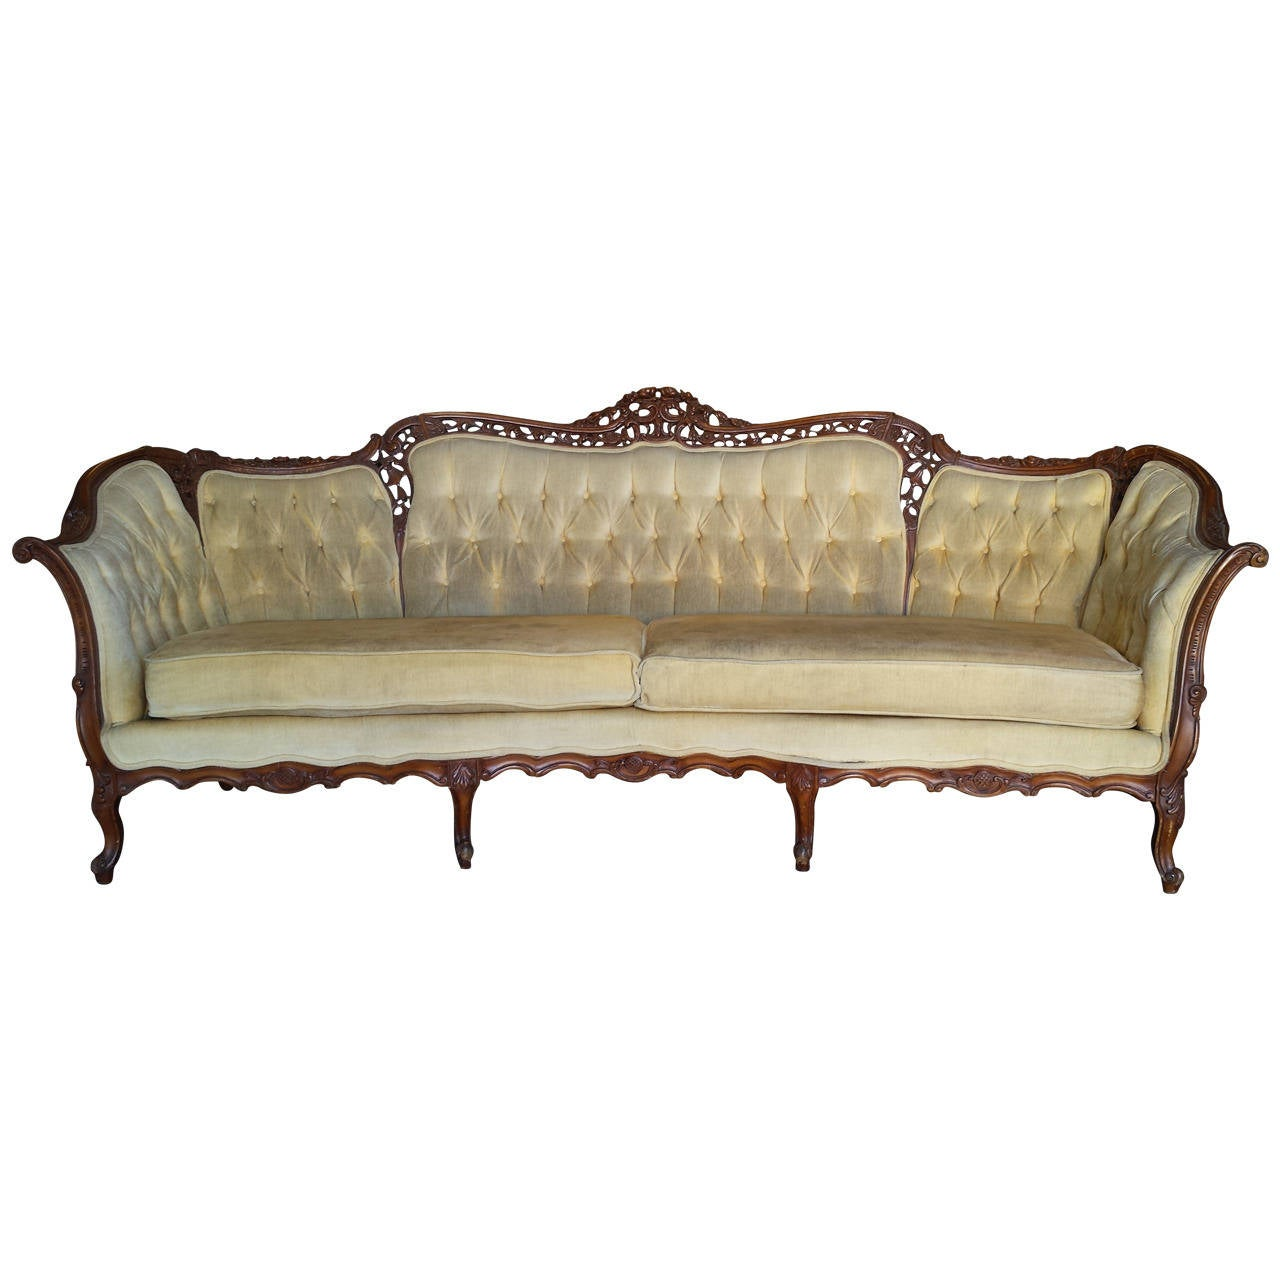 French Sofa French Louis Xv Style Full Size Tufted Sofa